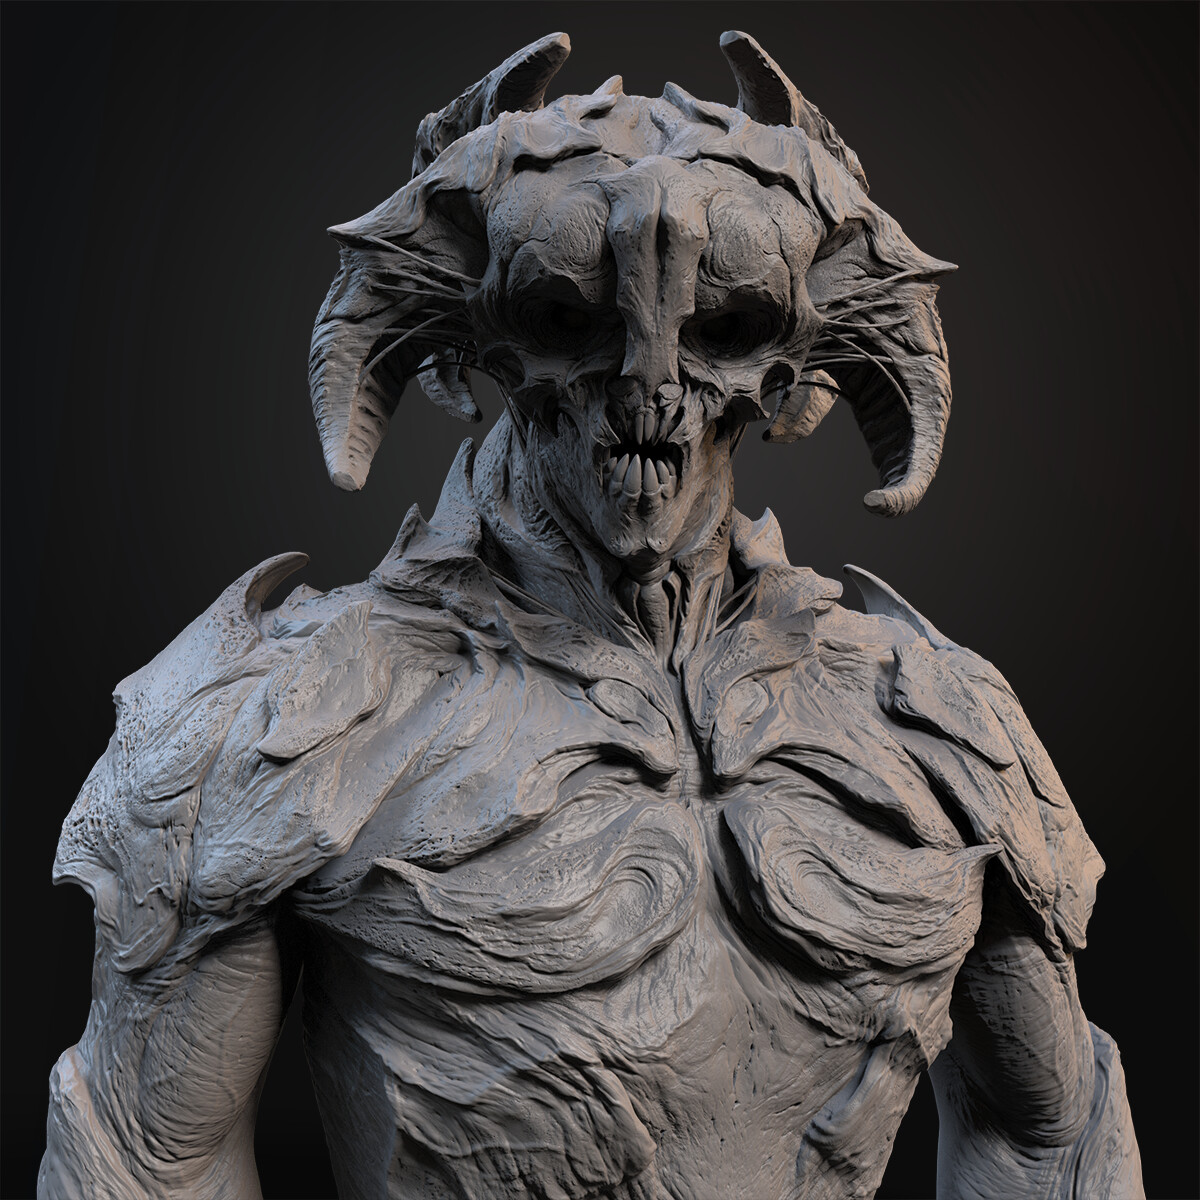 High-res sculpt in ZBrush